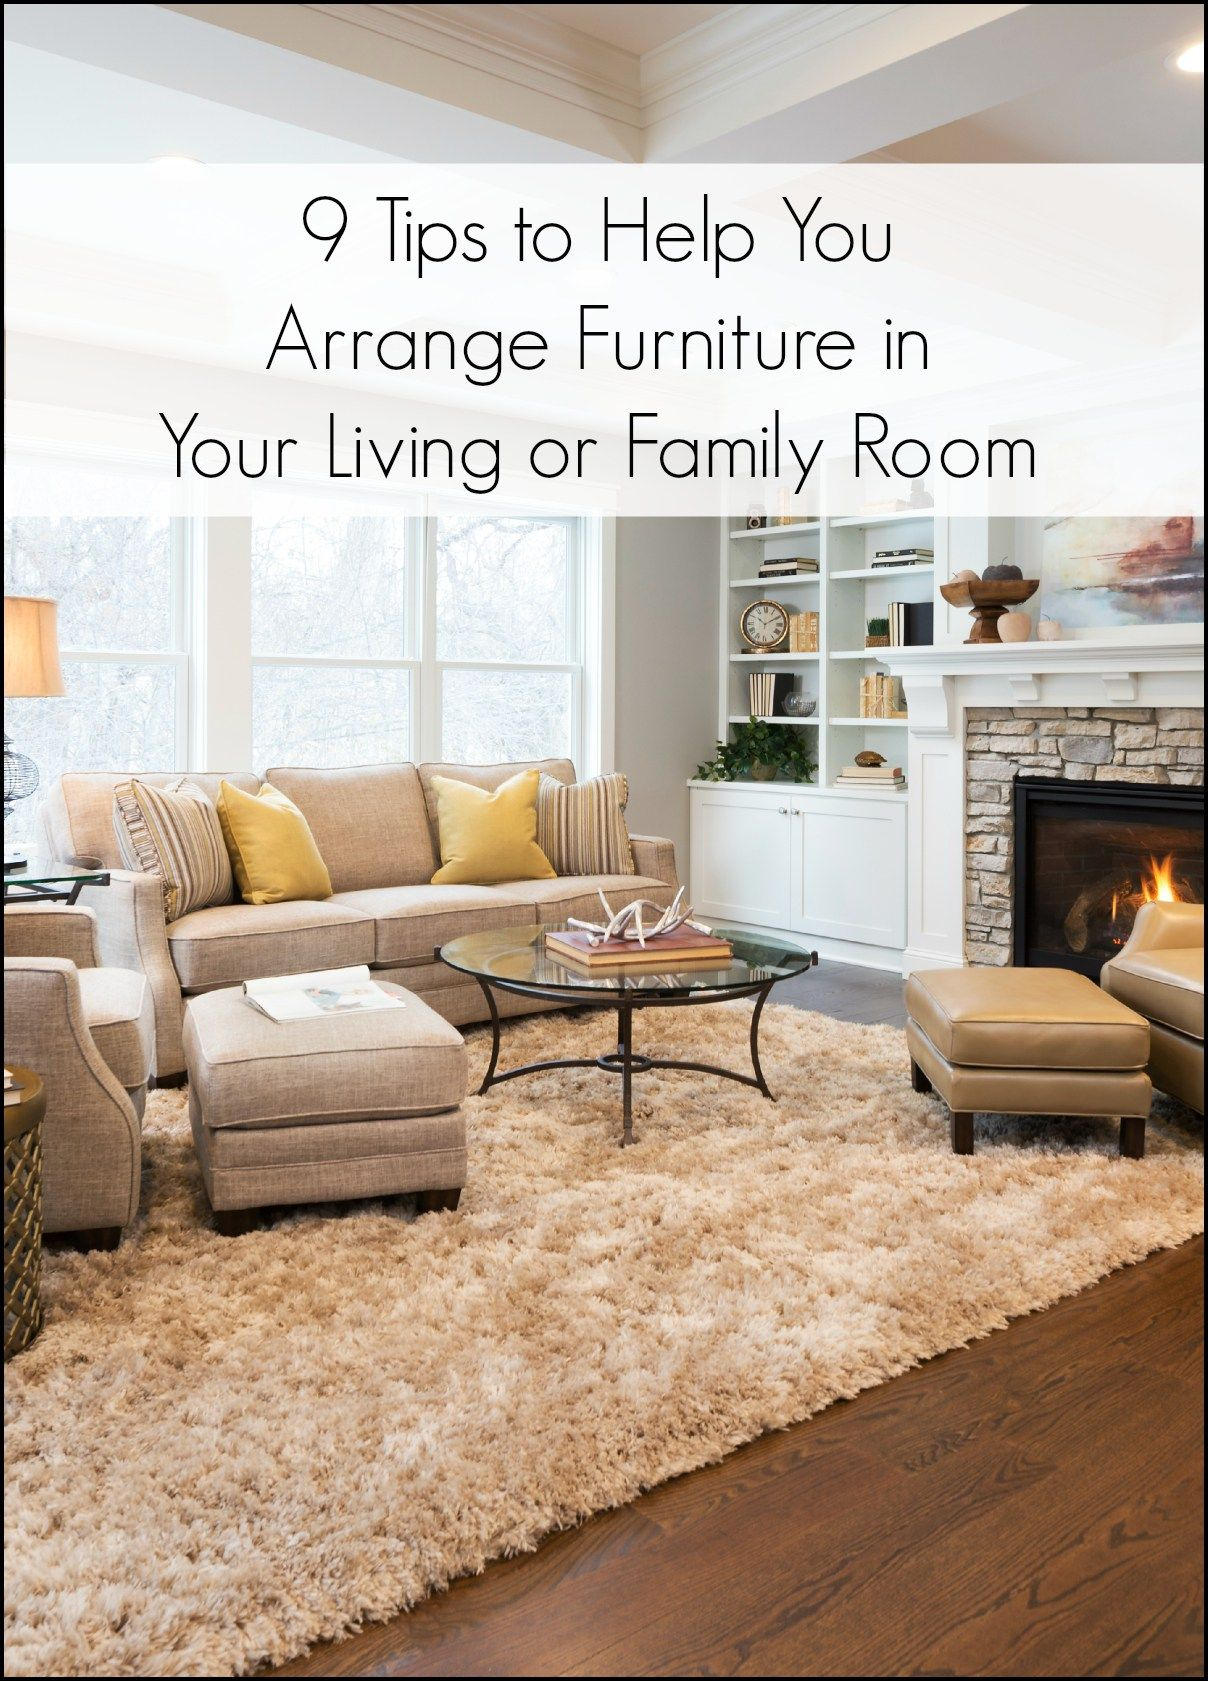 Design Of Furniture For Living Room: 9 Tips For Arranging Furniture In A Living Room Or Family